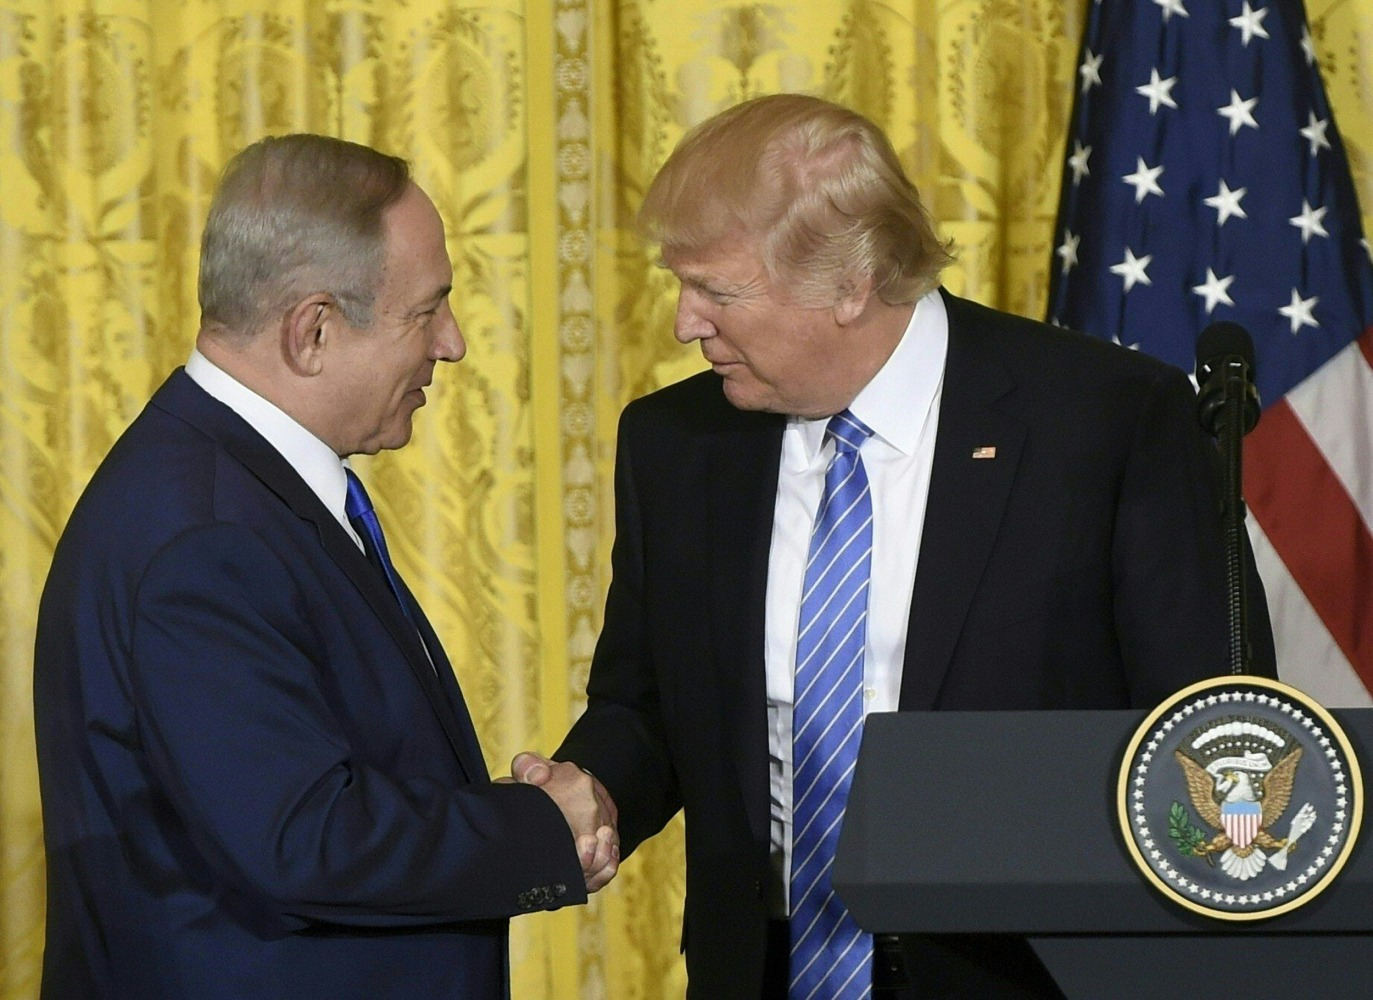 Trump Rules Out Moving Israel Embassy to Jerusalem for Now, Official Says